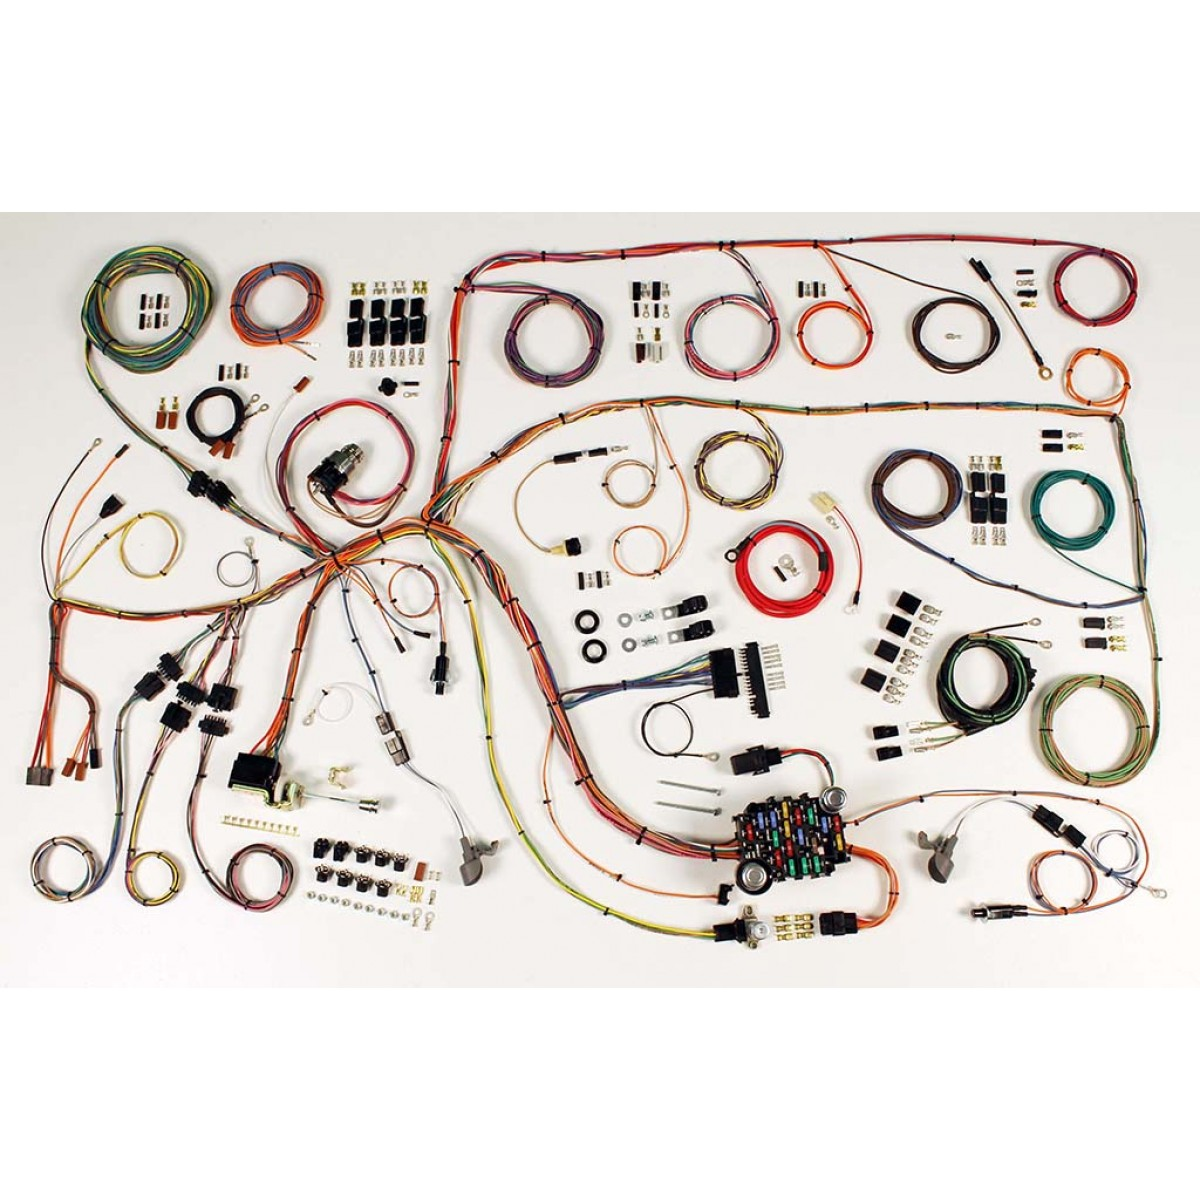 1964 Ford F100 Wiring Harness Diagram Libraries 64 Solenoid 1960 Falcon Complete Kit